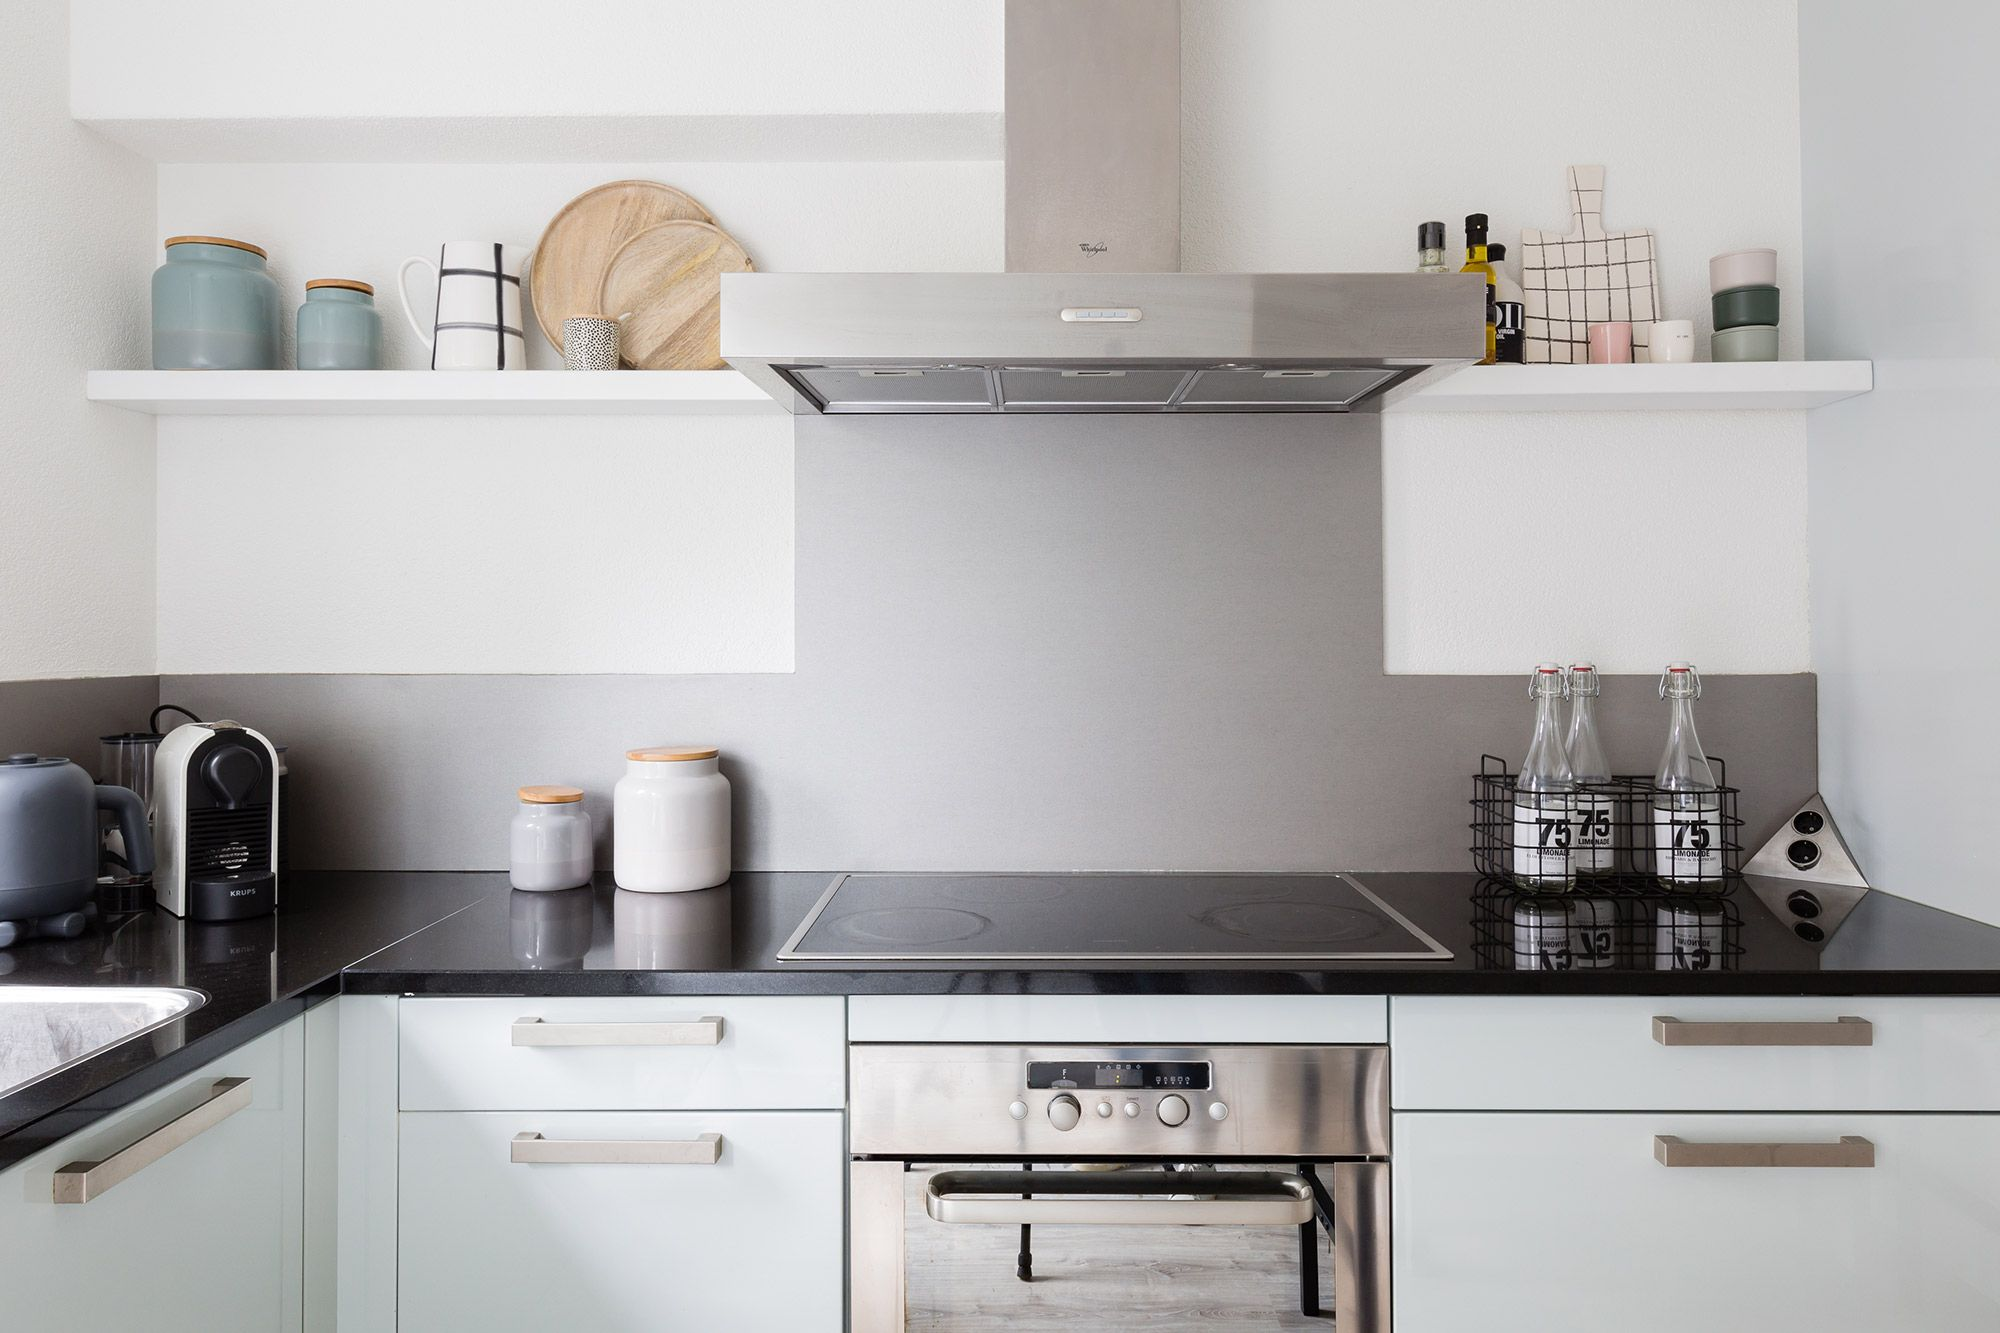 Diy zwevende planken in de keuken keuken kitchen